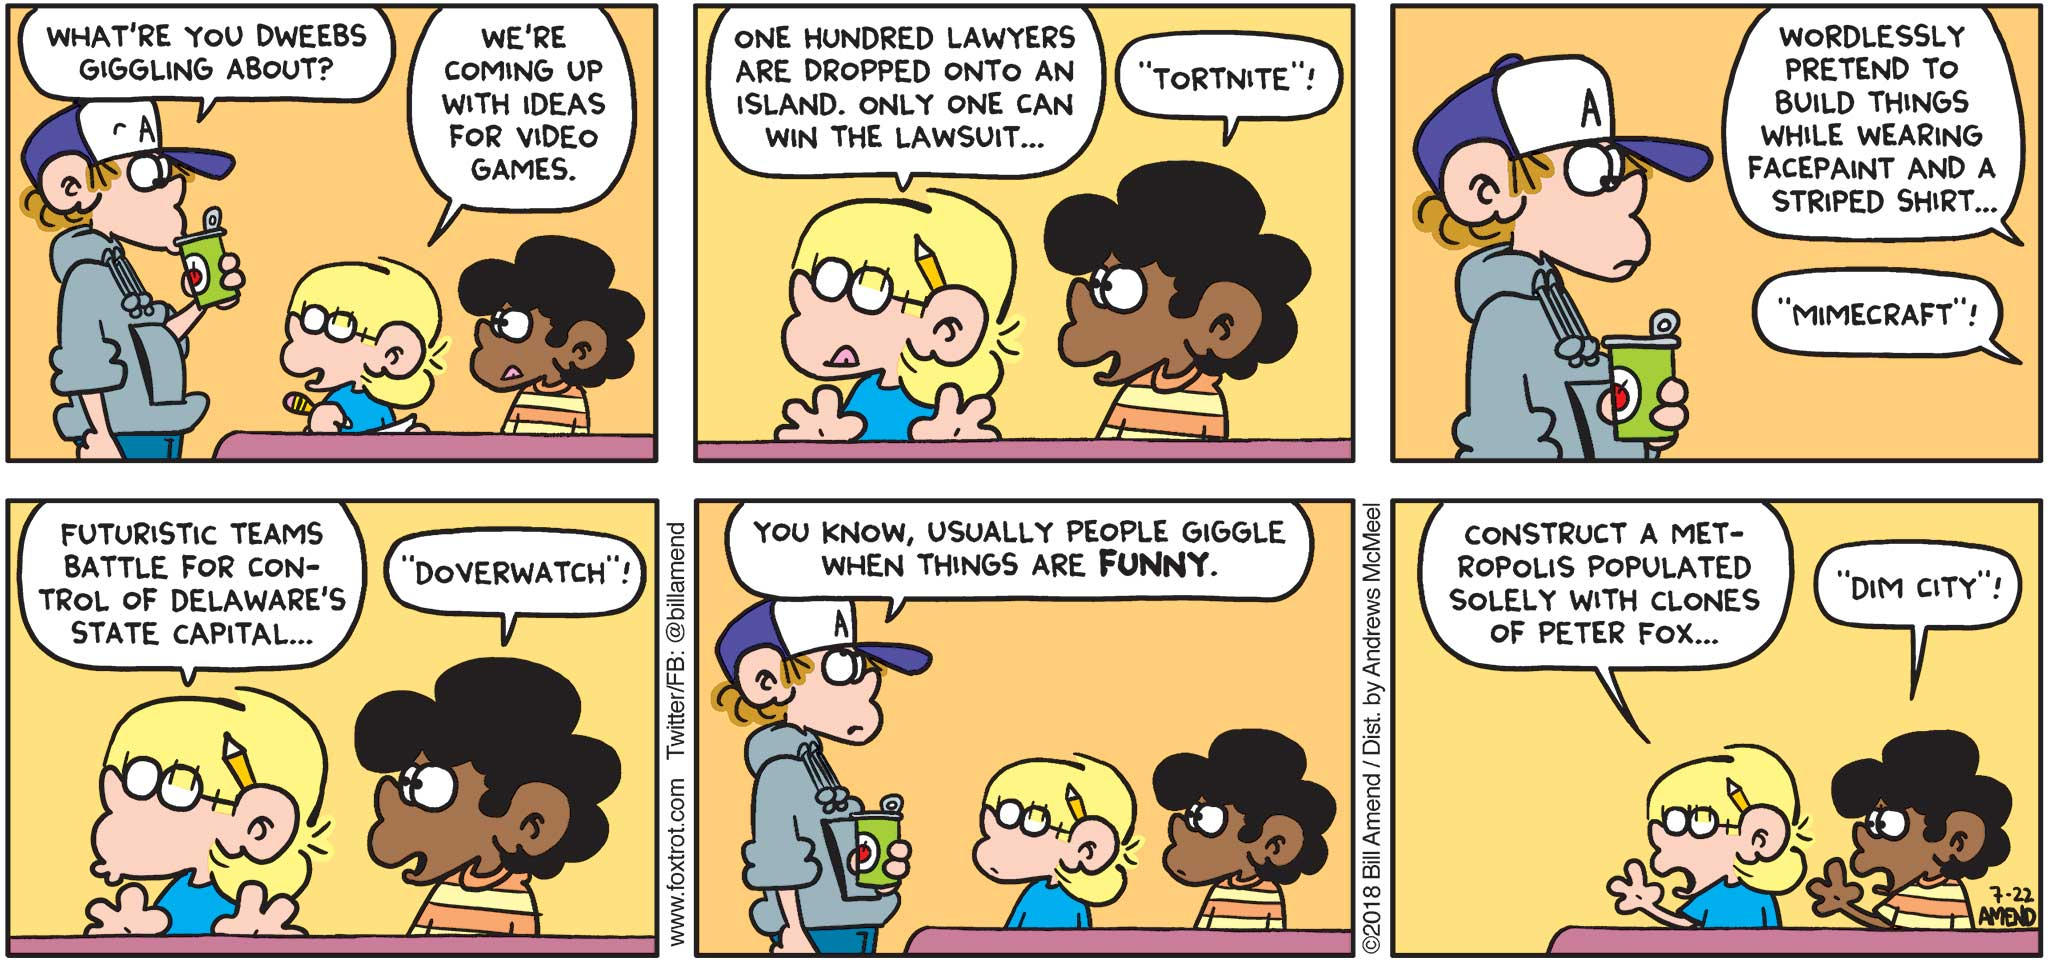 "FoxTrot by Bill Amend - ""Dim City"" published July 22, 2018 - Peter says: What're you dweebs giggling about? Jason says: We're coming up with ideas for video games. One hundred lawyers are dropped onto an island. Only one can win the lawsuit... Marcus says: ""Tortnite!"" Jason says: Wordlessly pretend to build things while wearing face paint and a striped shirt... Marcus says: ""Mimecraft!"" Jason says: Futuristic teams battle for control of Delaware's state capital... Marcus says: ""Doverwatch!"" Peter says: You know, usually people giggle when things are FUNNY. Jason says: Construct a metropolis populated solely with clones of Peter Fox... Marcus says: ""Dim City!"""